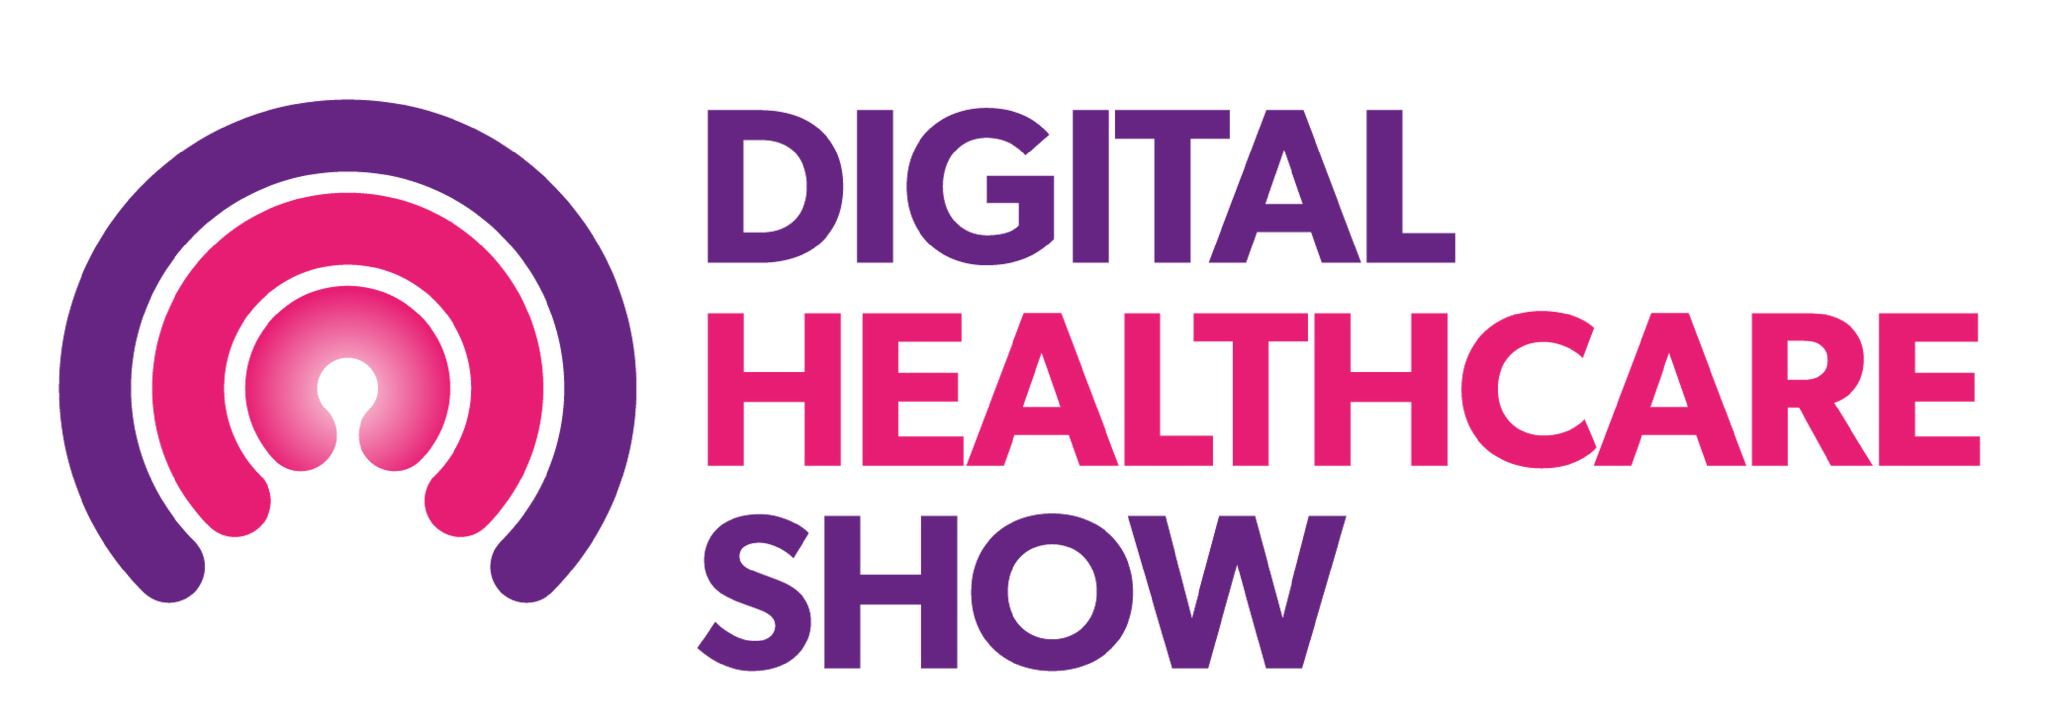 PRSB to exhibit at the Digital Healthcare show and Health+Care